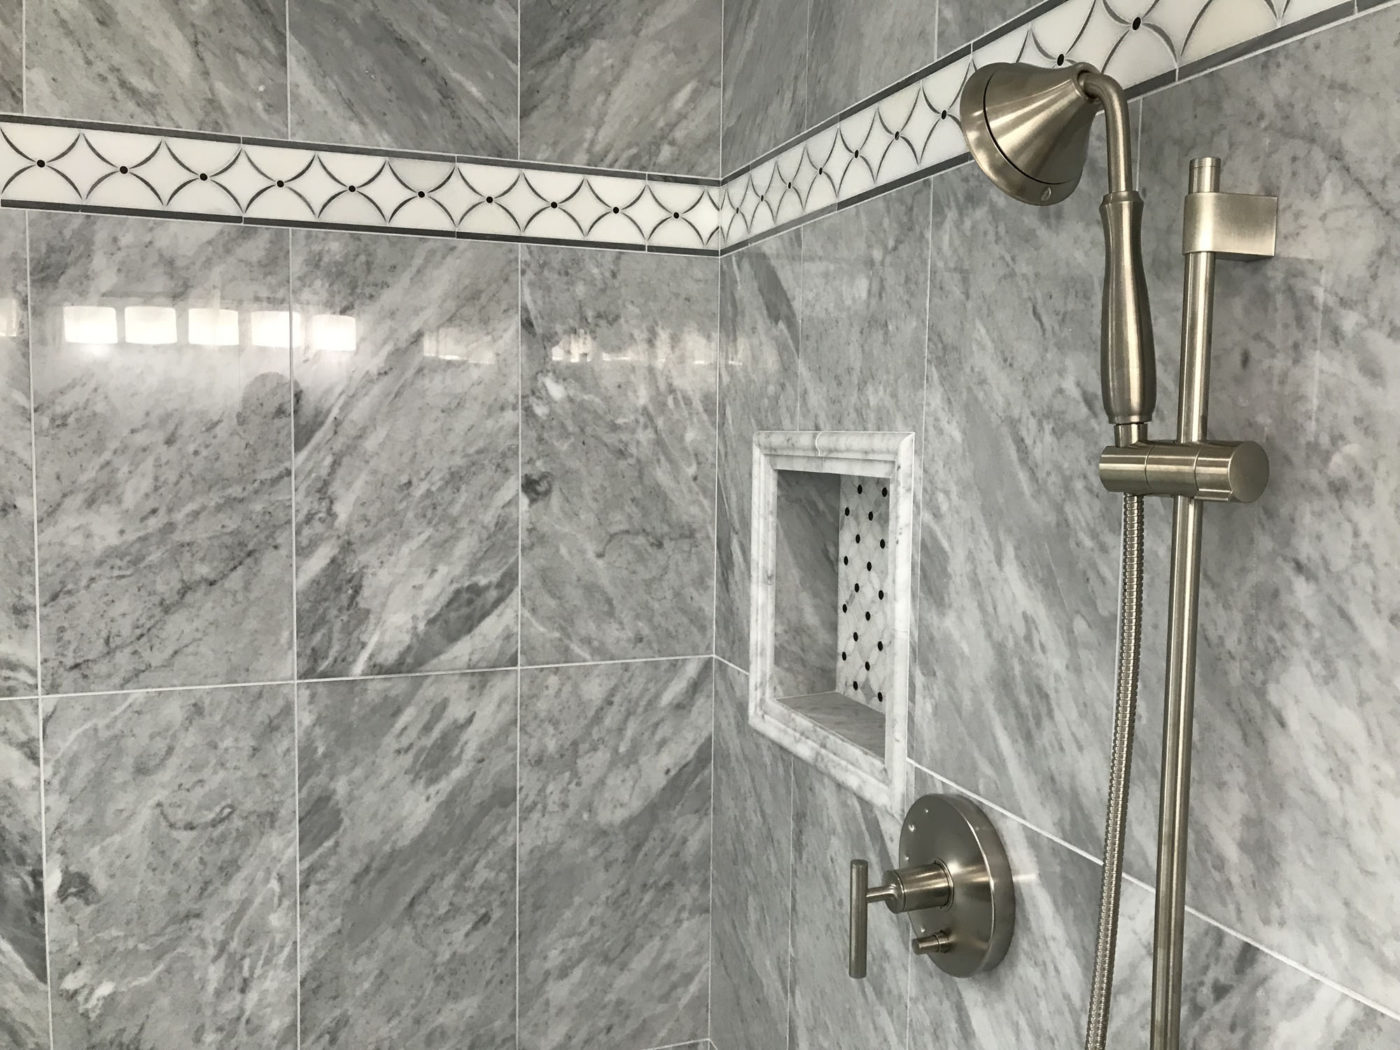 Bathroom Renovation Services in Schaumburg IL, new shower and natural stone tile